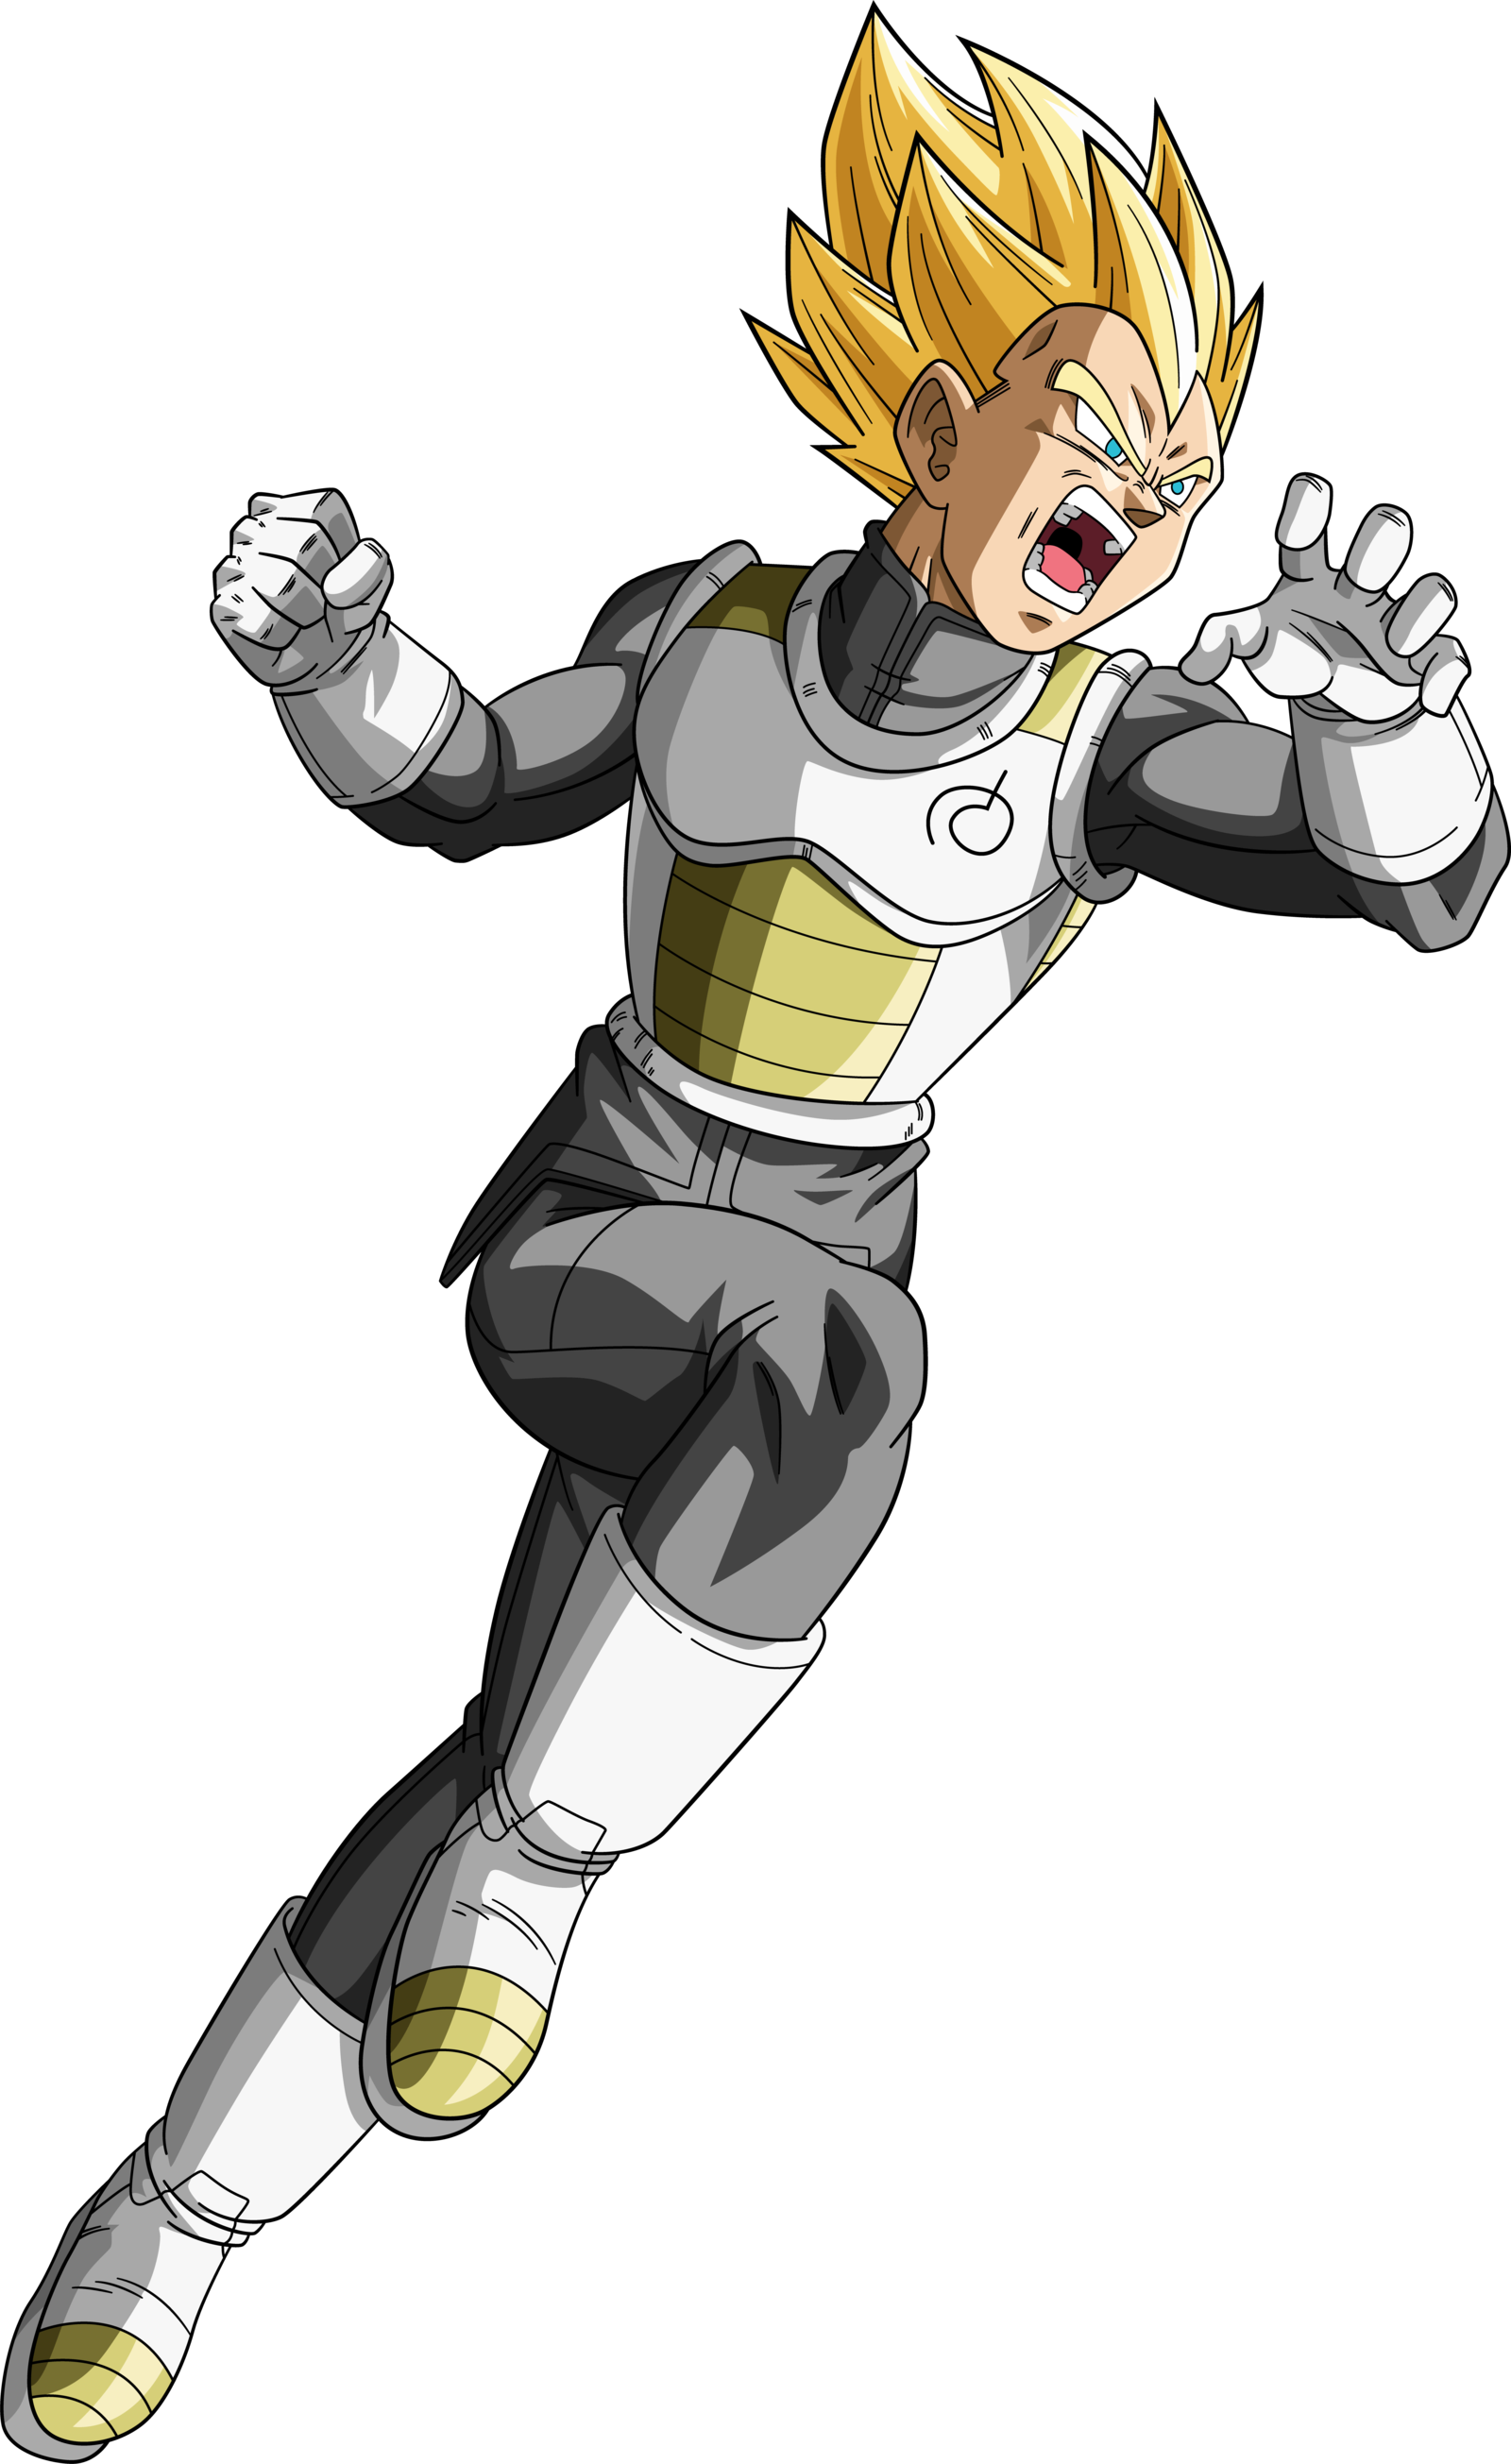 Vegeta dragon ball super png. Image saiyan dragonball by